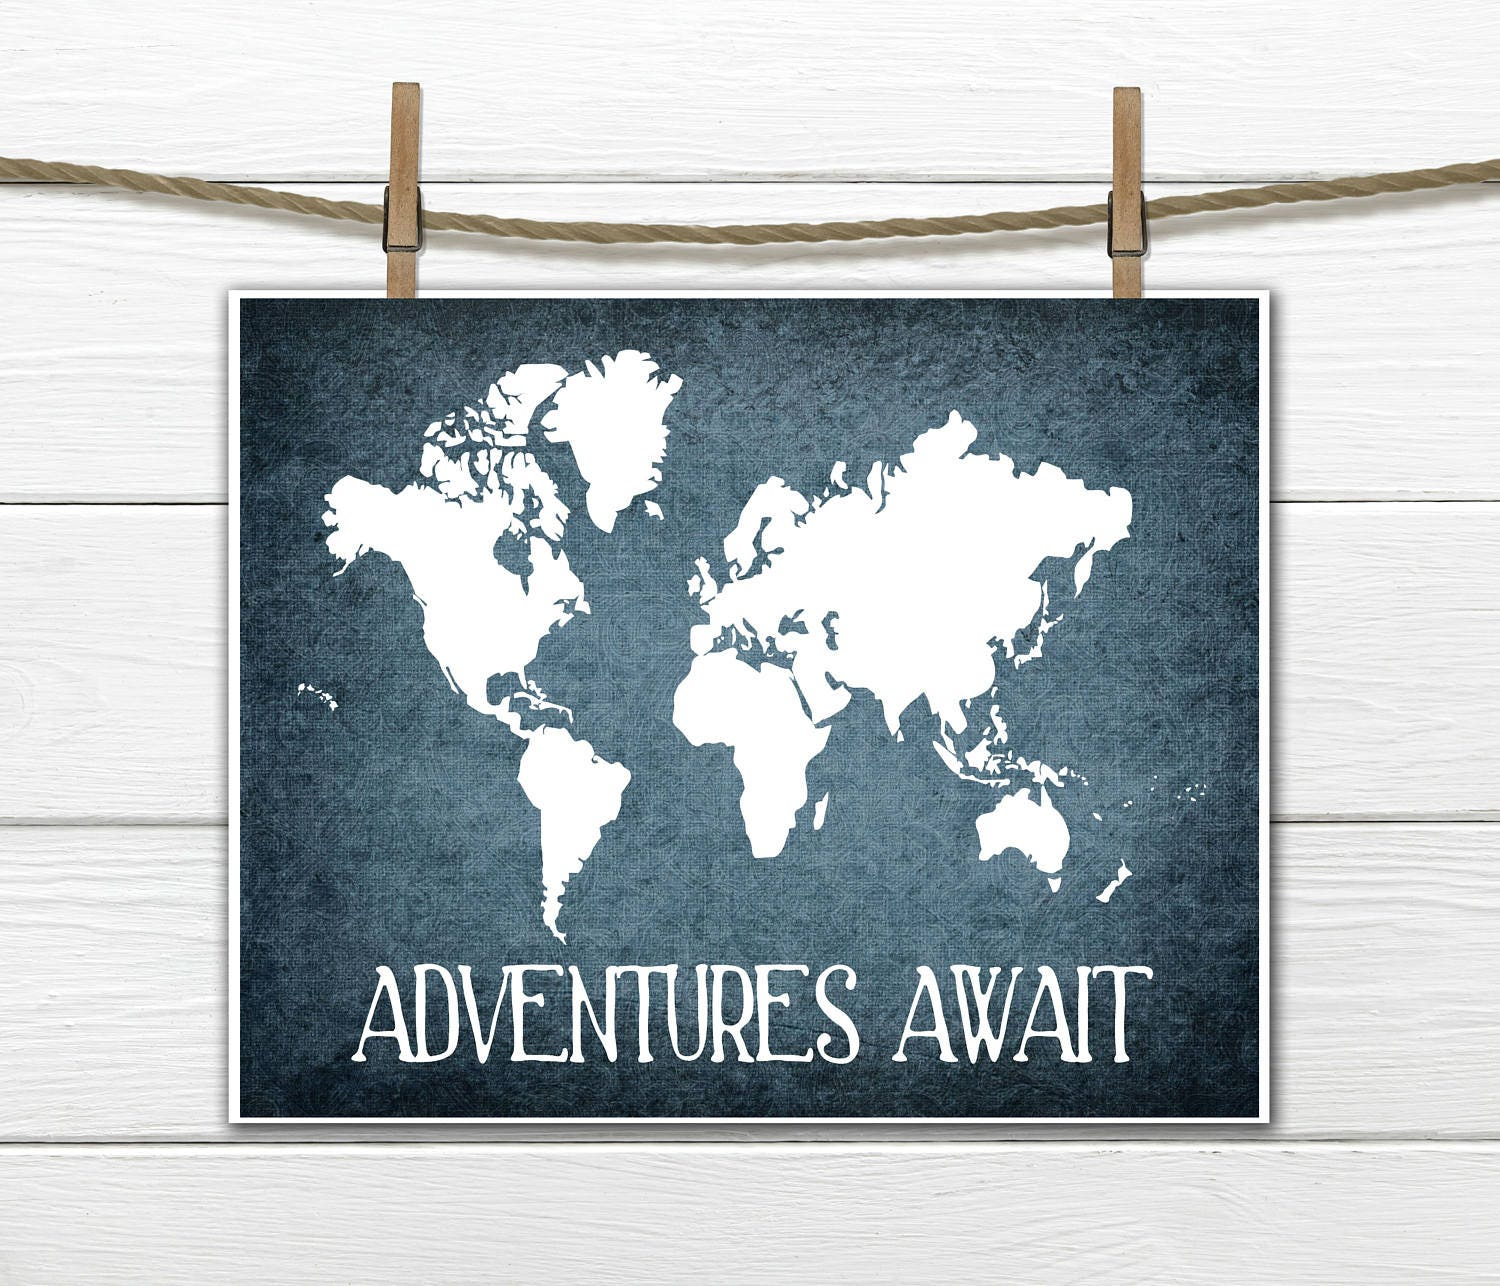 World map print adventure awaits instant download pdf 8x10 gumiabroncs Images